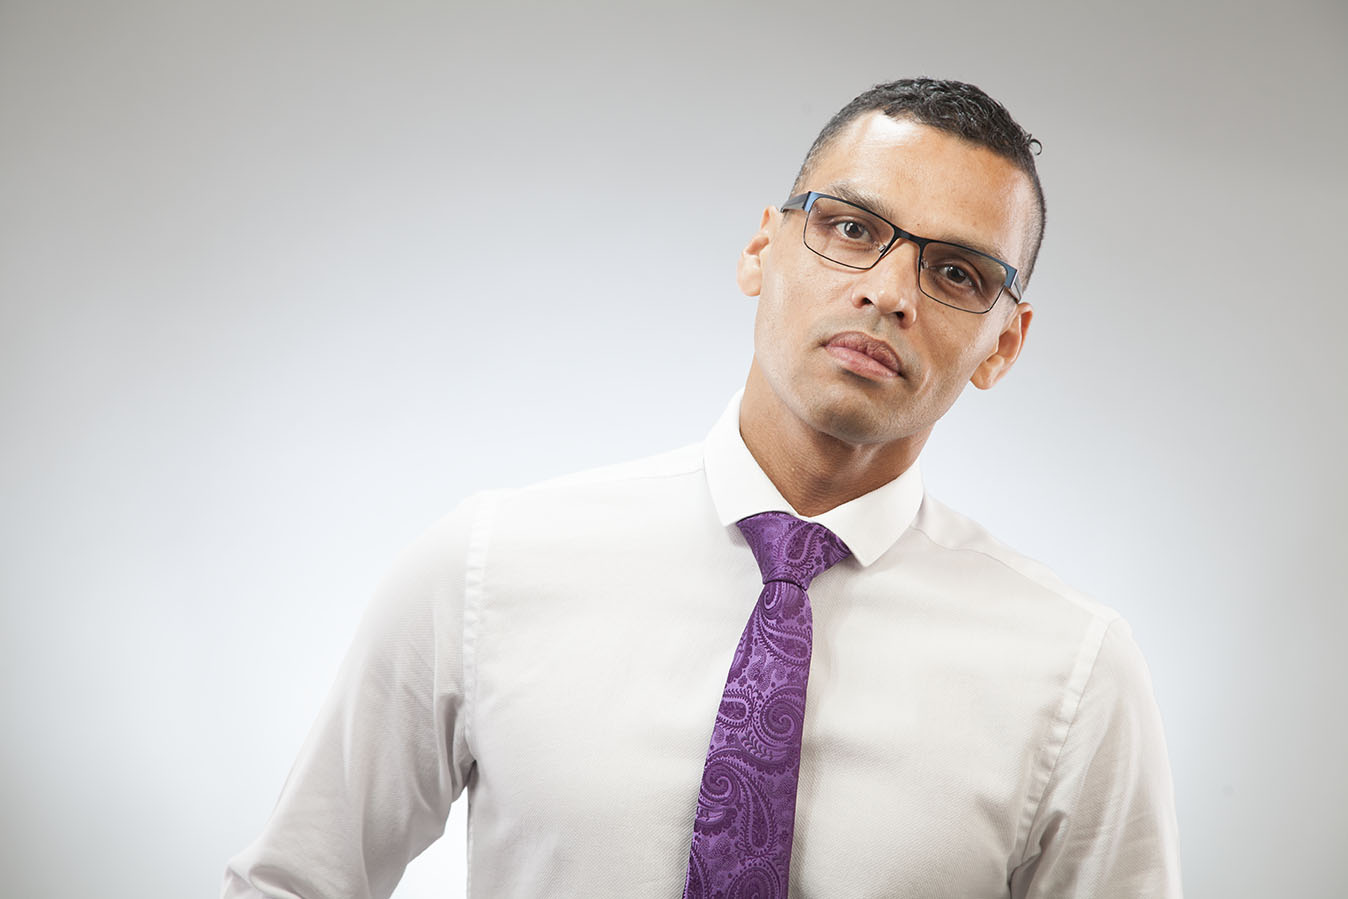 high key portrait of a black man wearing white shirt, glasses and purple tie before retouched